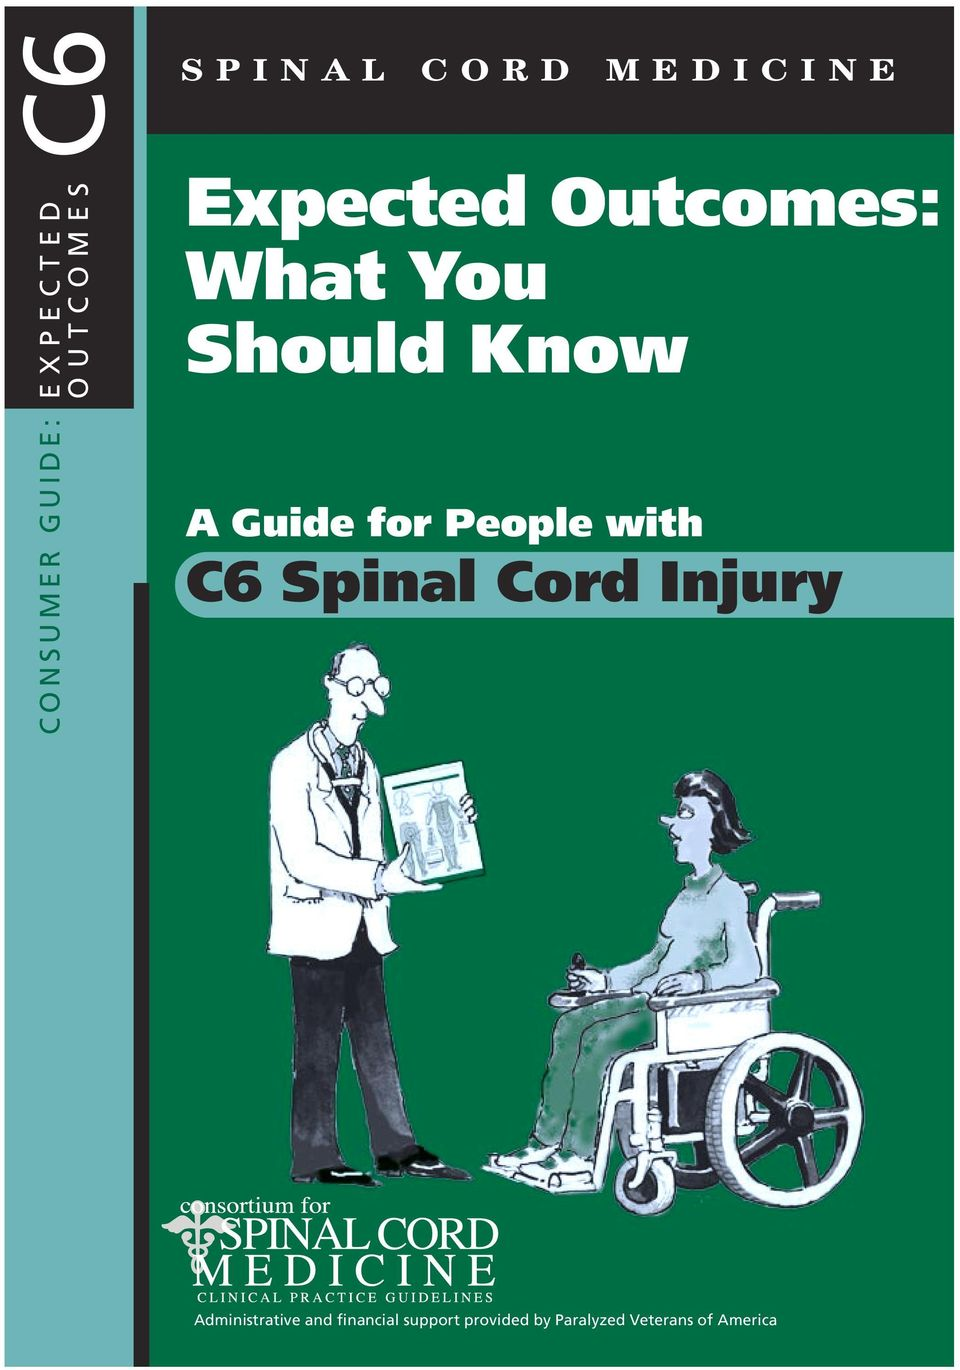 Guide for People with C6 Spinal Cord Injury